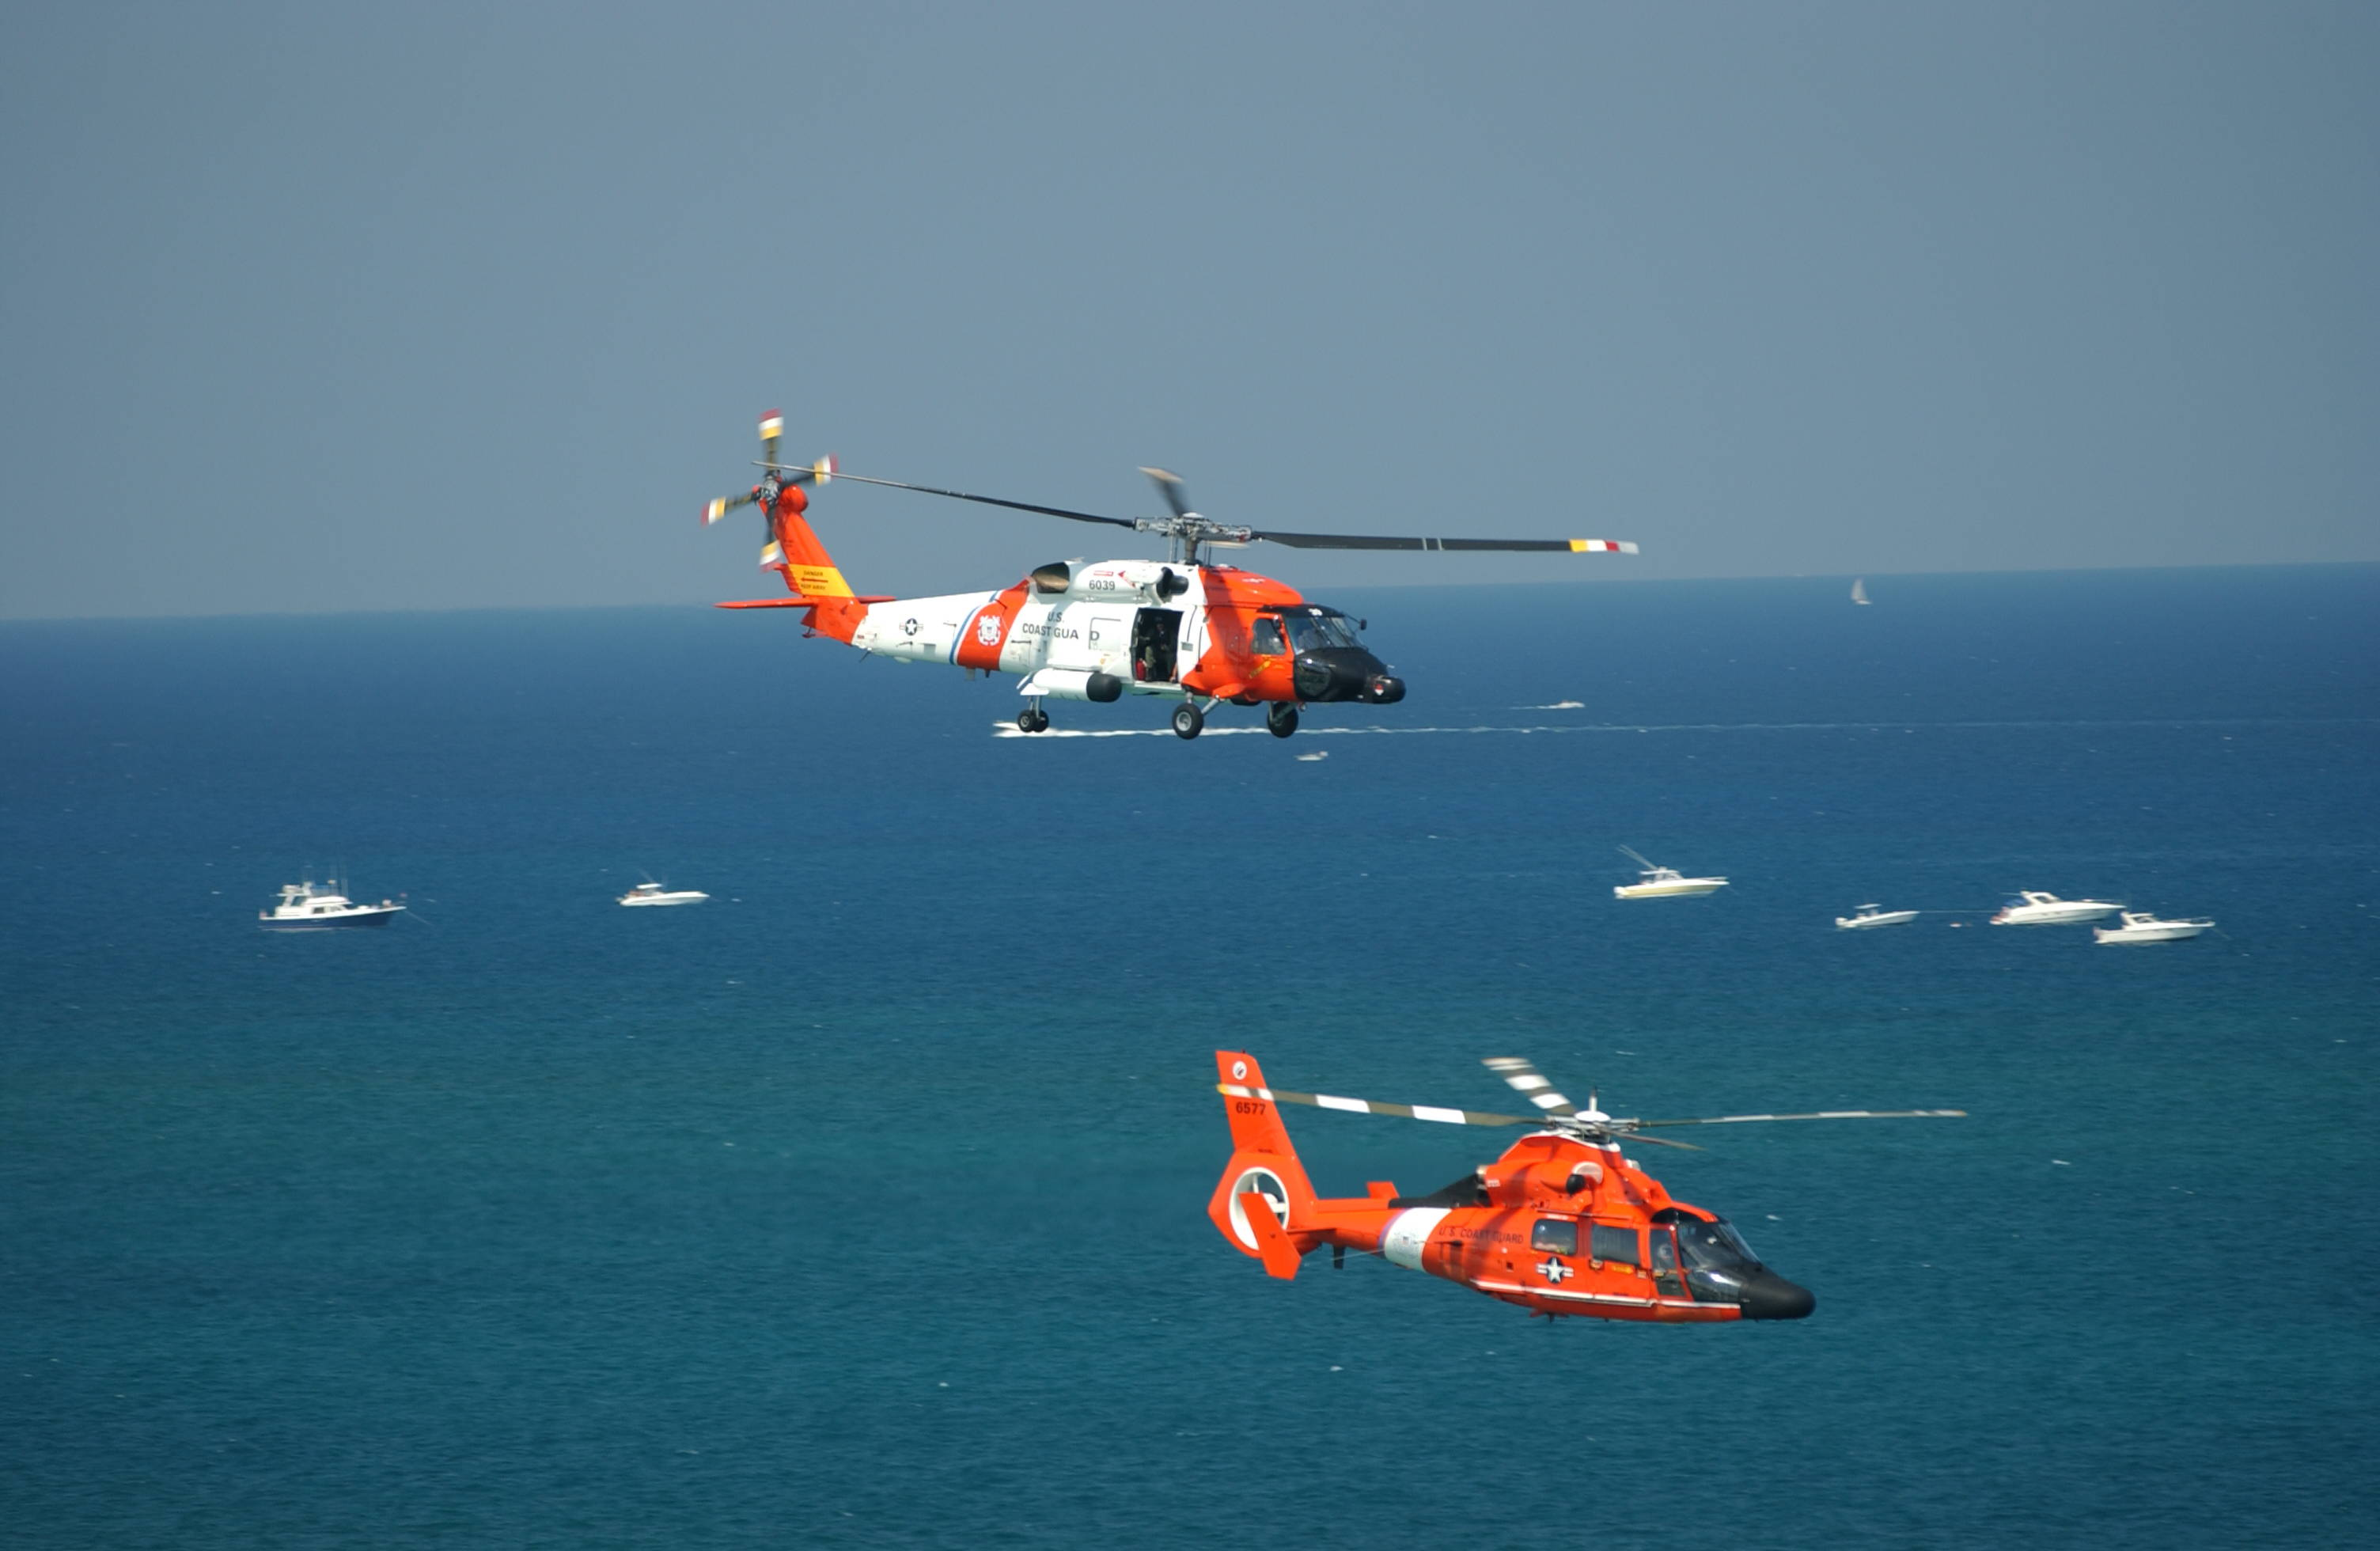 Search Continues For 3 Missing Coast Guardsmen After Helicopter